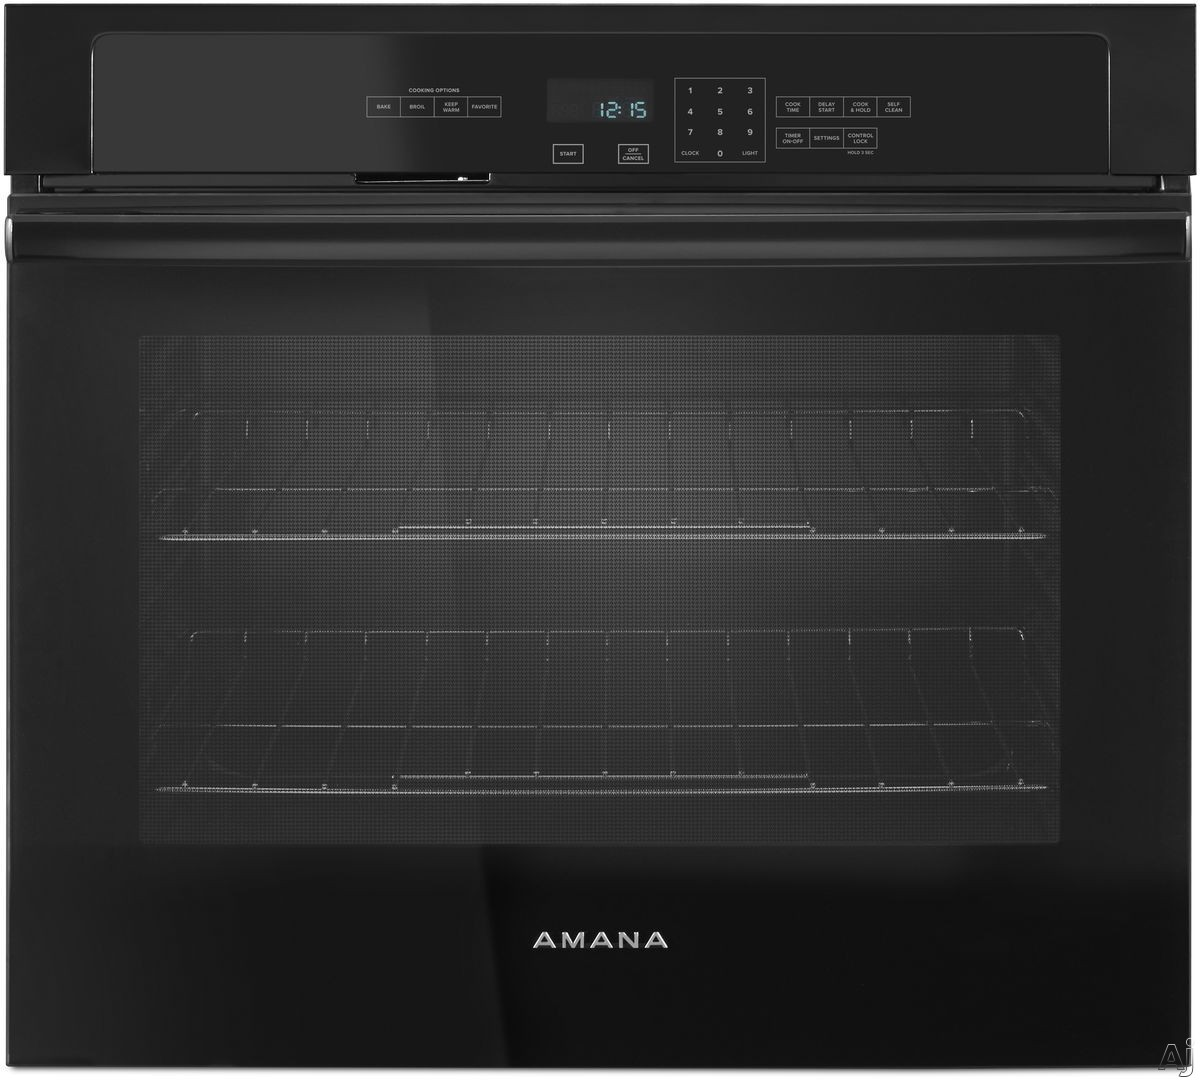 Picture of Amana AWO6313SFB 30 Inch Single Electric Wall Oven with 5 cu ft of Capacity Temp Assure Cooking System Hidden Bake Element Incandescent Lighting Fit System Self-Cleaning ADA Compliant and Sabbath Mode Black